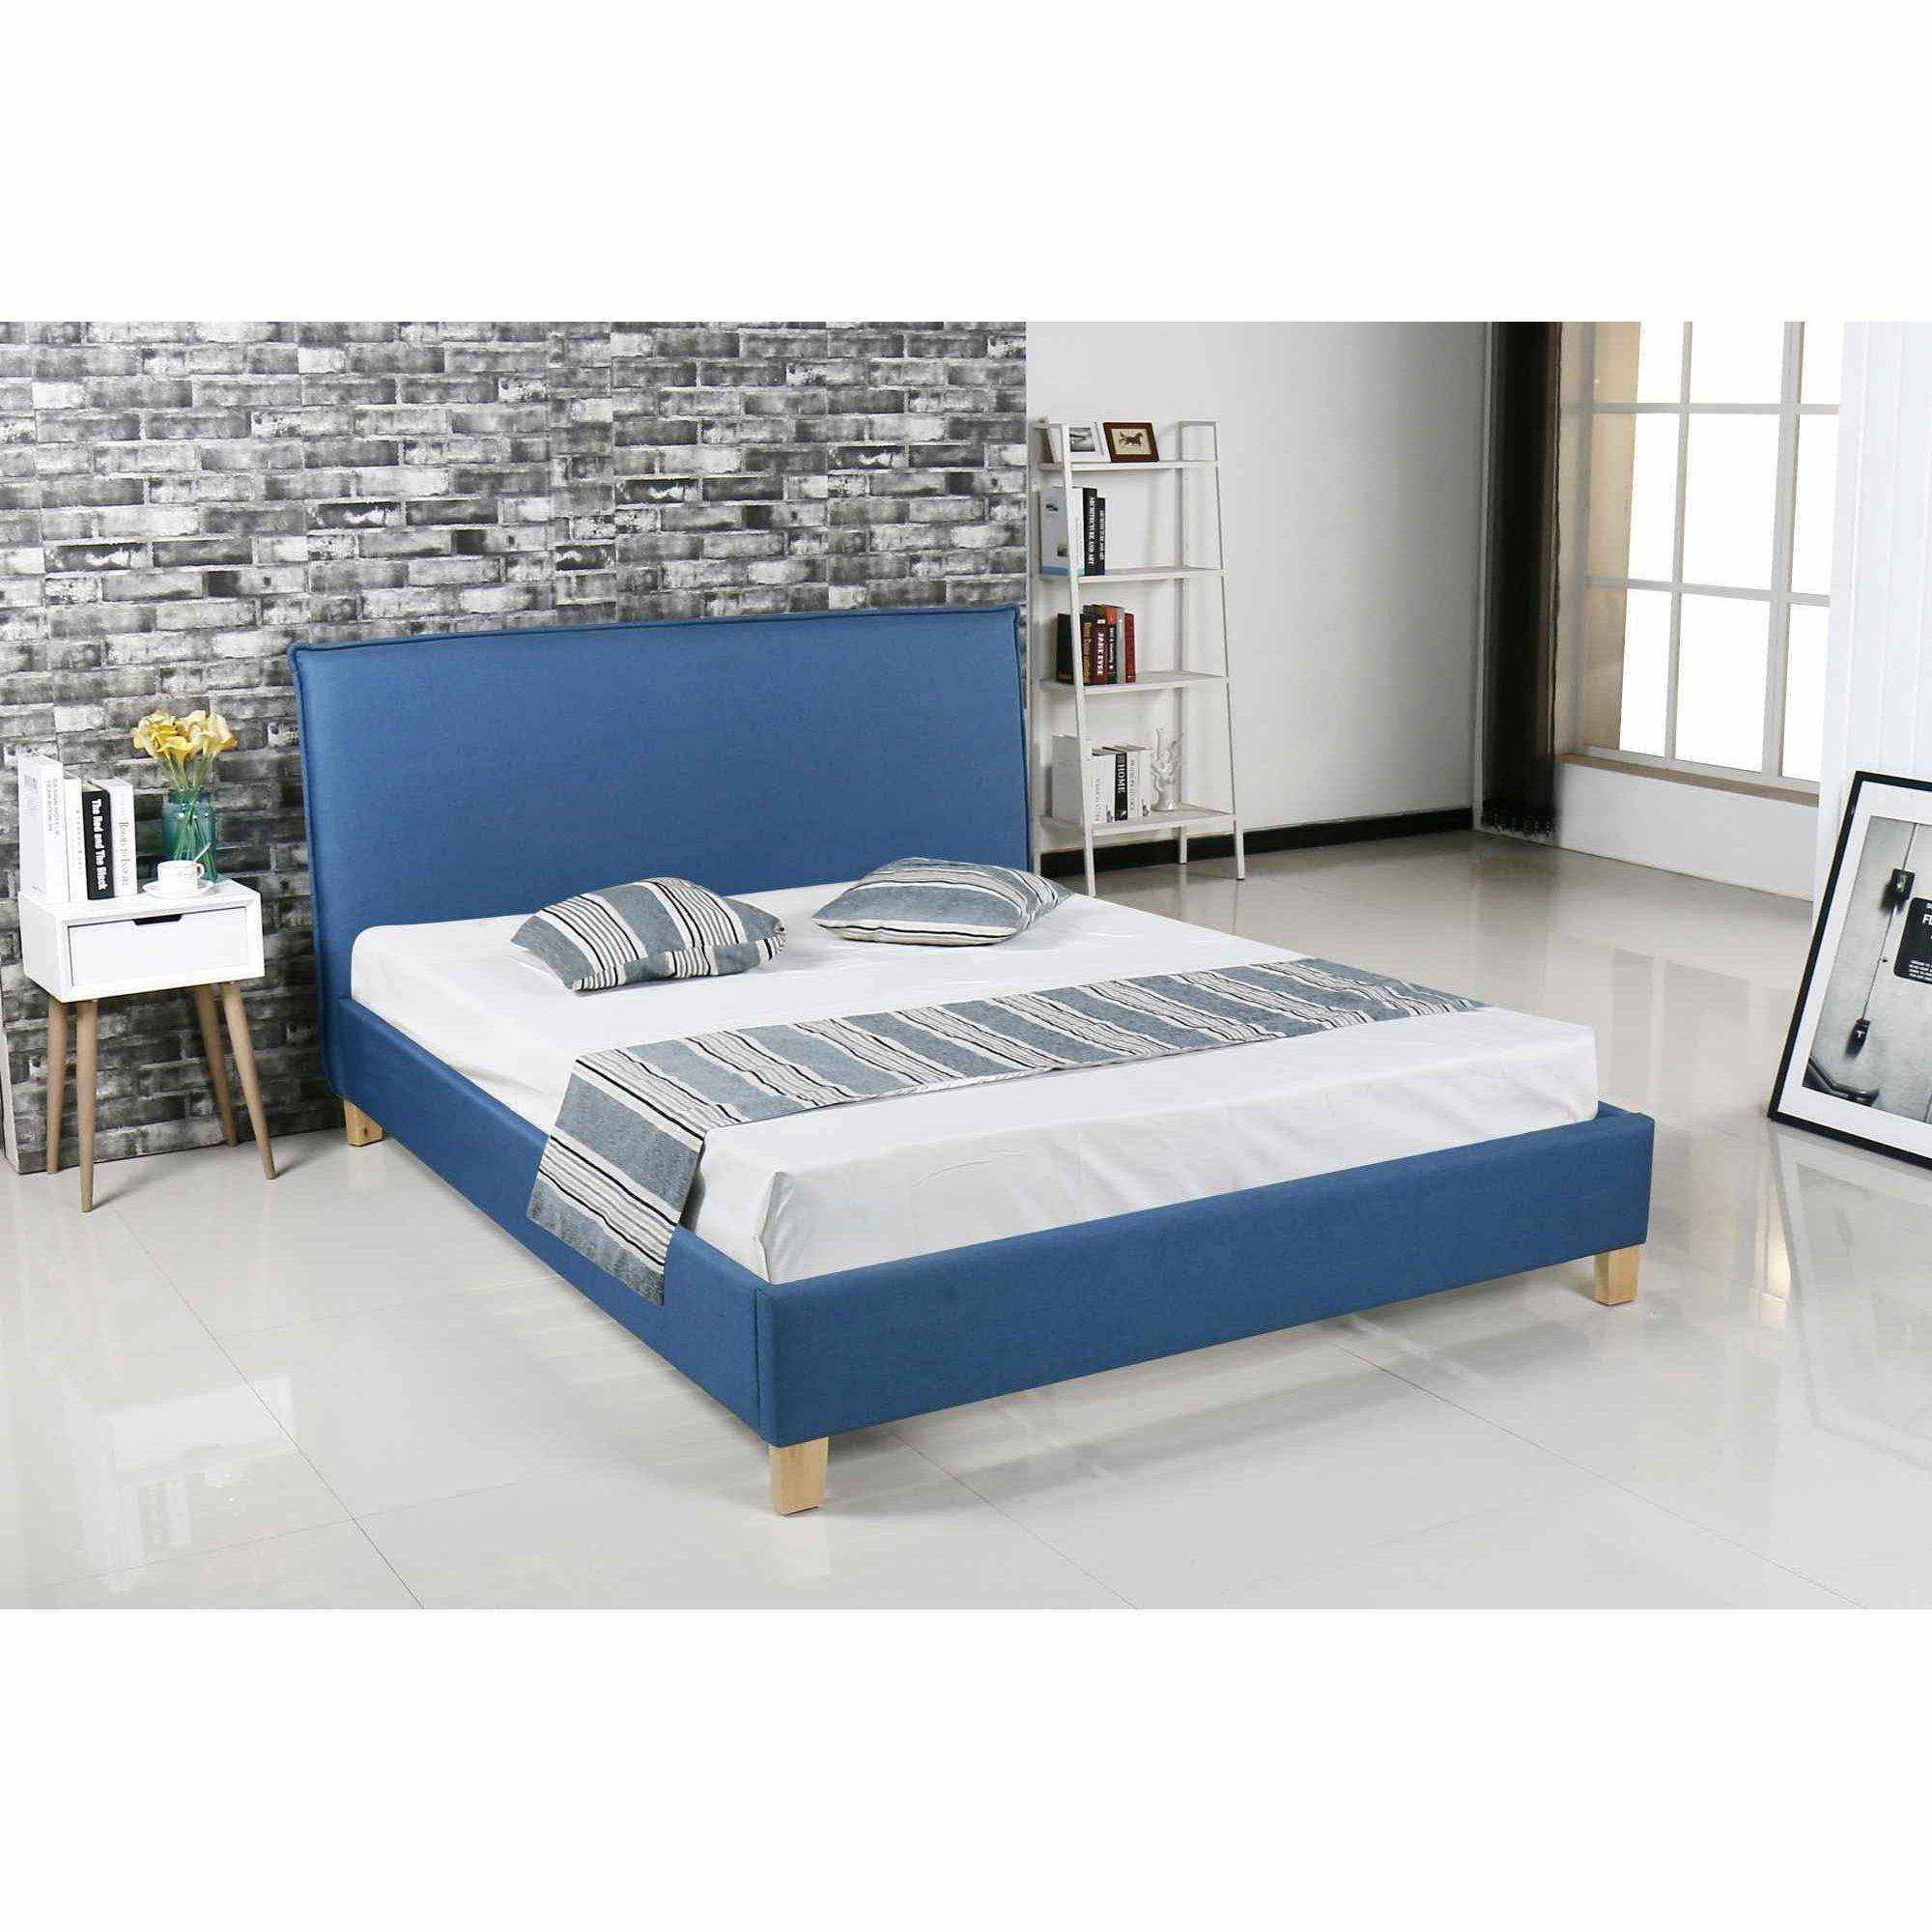 deco in paris 9 lit scandinave en tissu bleu brook. Black Bedroom Furniture Sets. Home Design Ideas